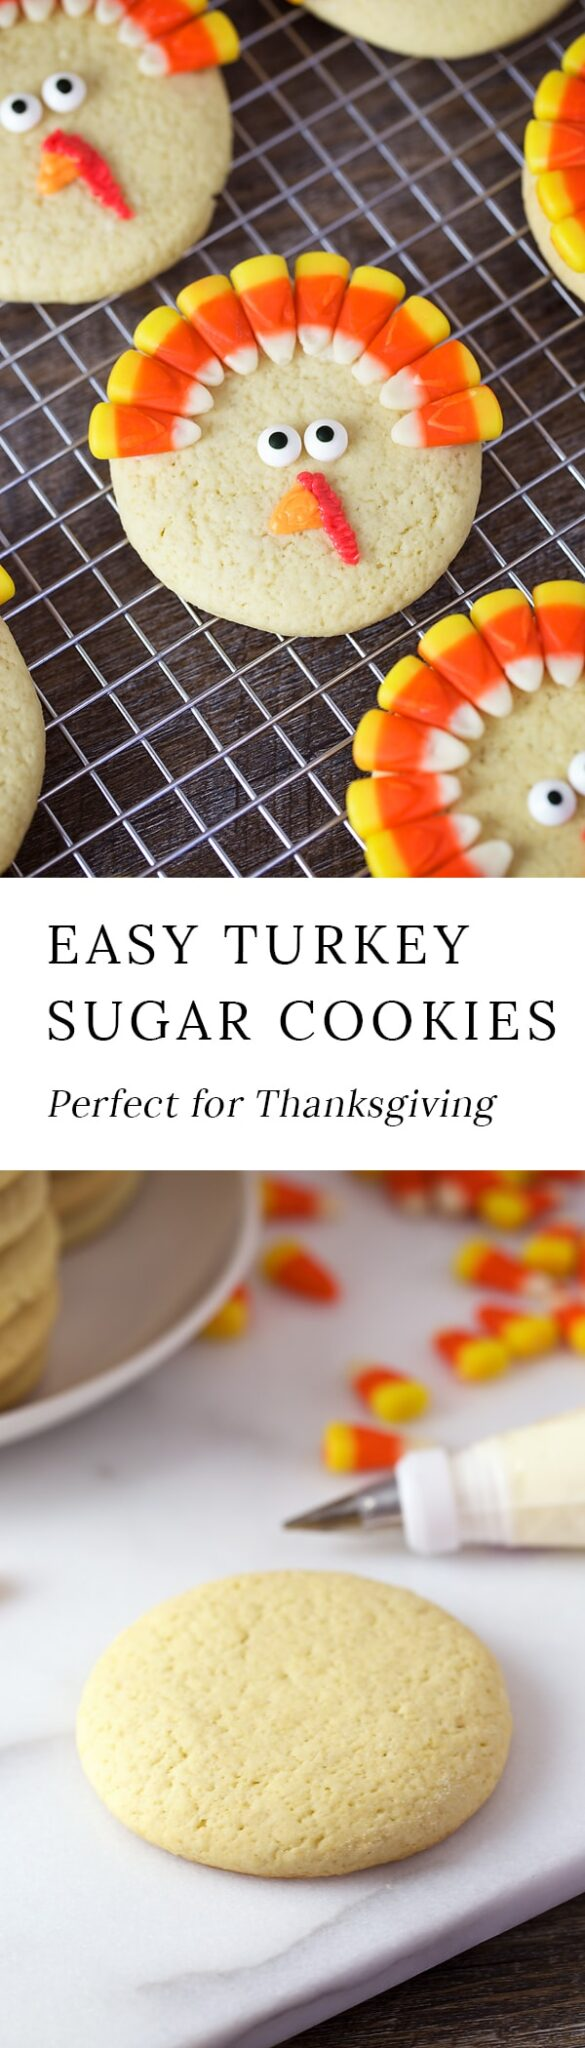 Turkey Sugar Cookies are a playful treat for November. Guaranteed to please kids of all ages, they are fun to make for parties, lunch boxes, and playdates. #thanksgiving #cookies via @firefliesandmudpies